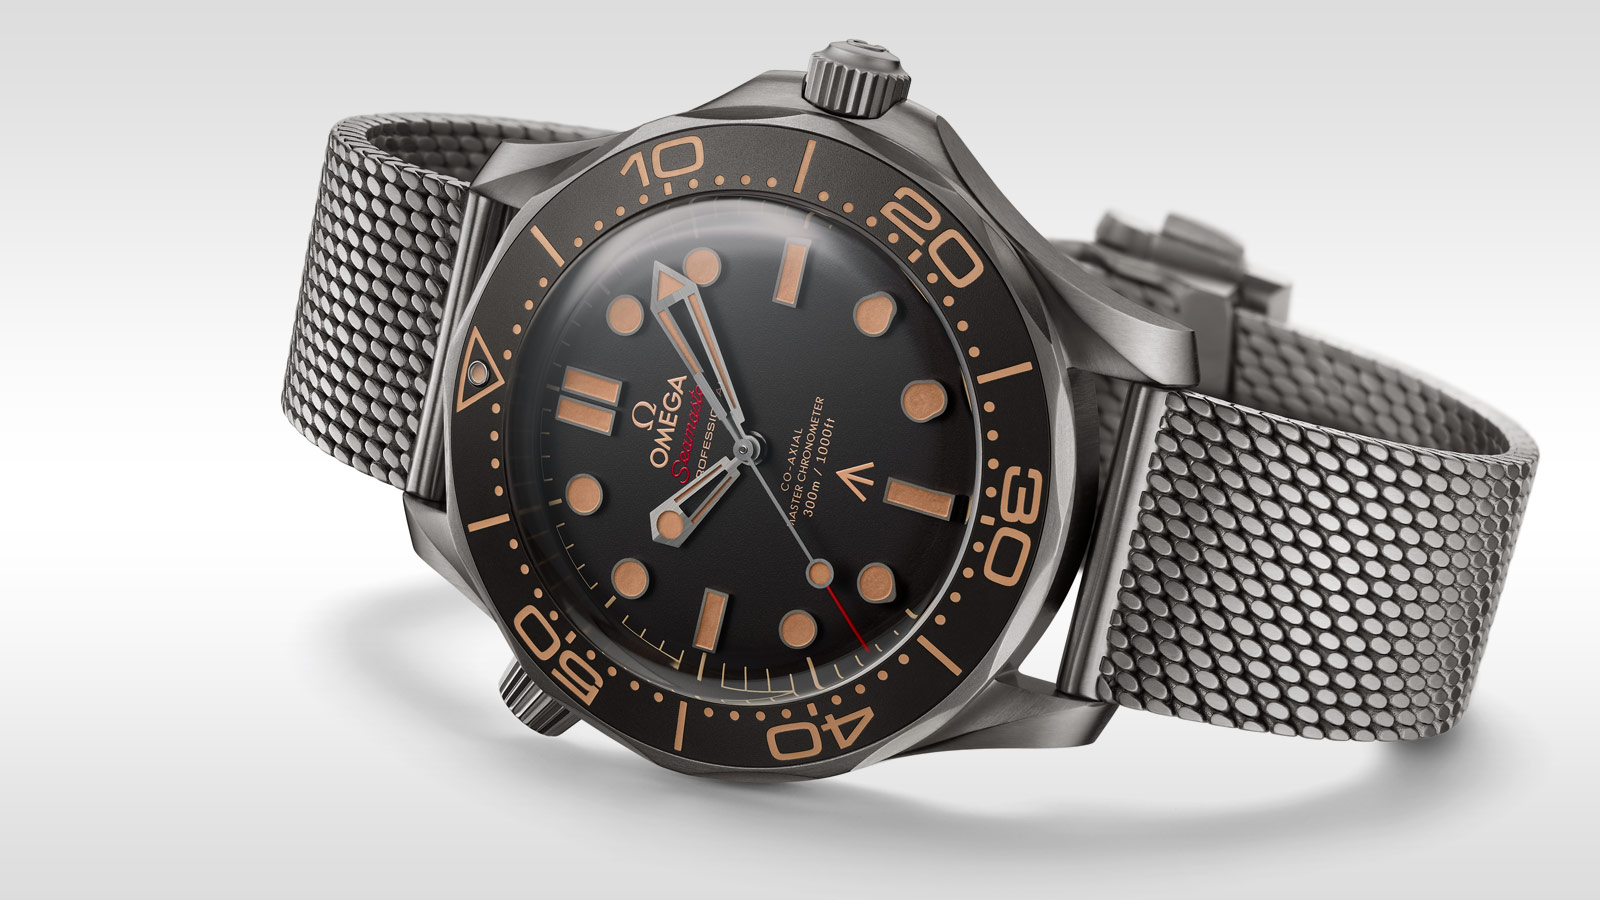 Seamaster Diver 300 M Diver 300M Omega Co‑Axial Master Chronometer 42 mm - 210.90.42.20.01.001 - Anzeigen 5